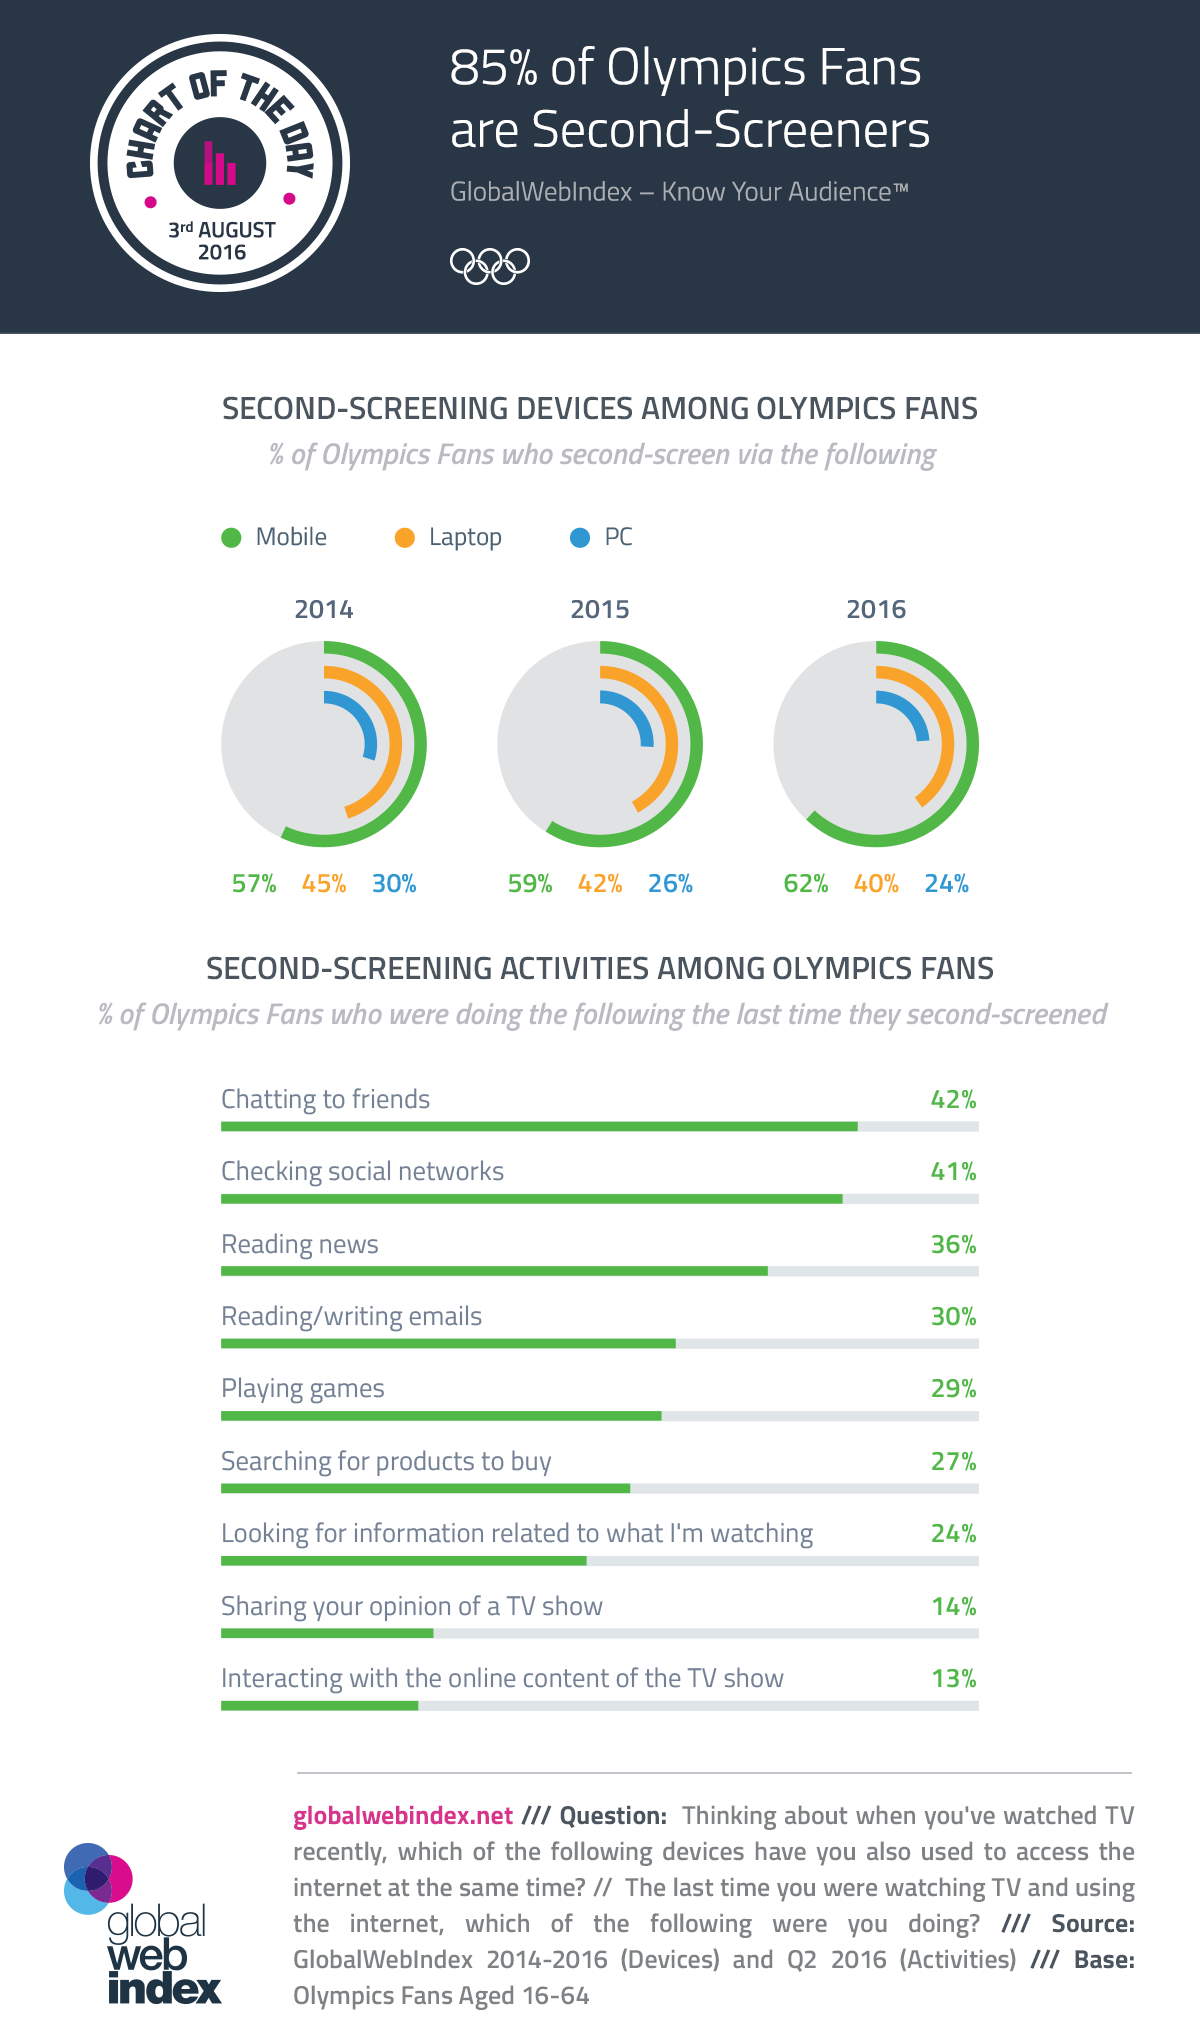 85% of Olympics Fans are Second-Screeners